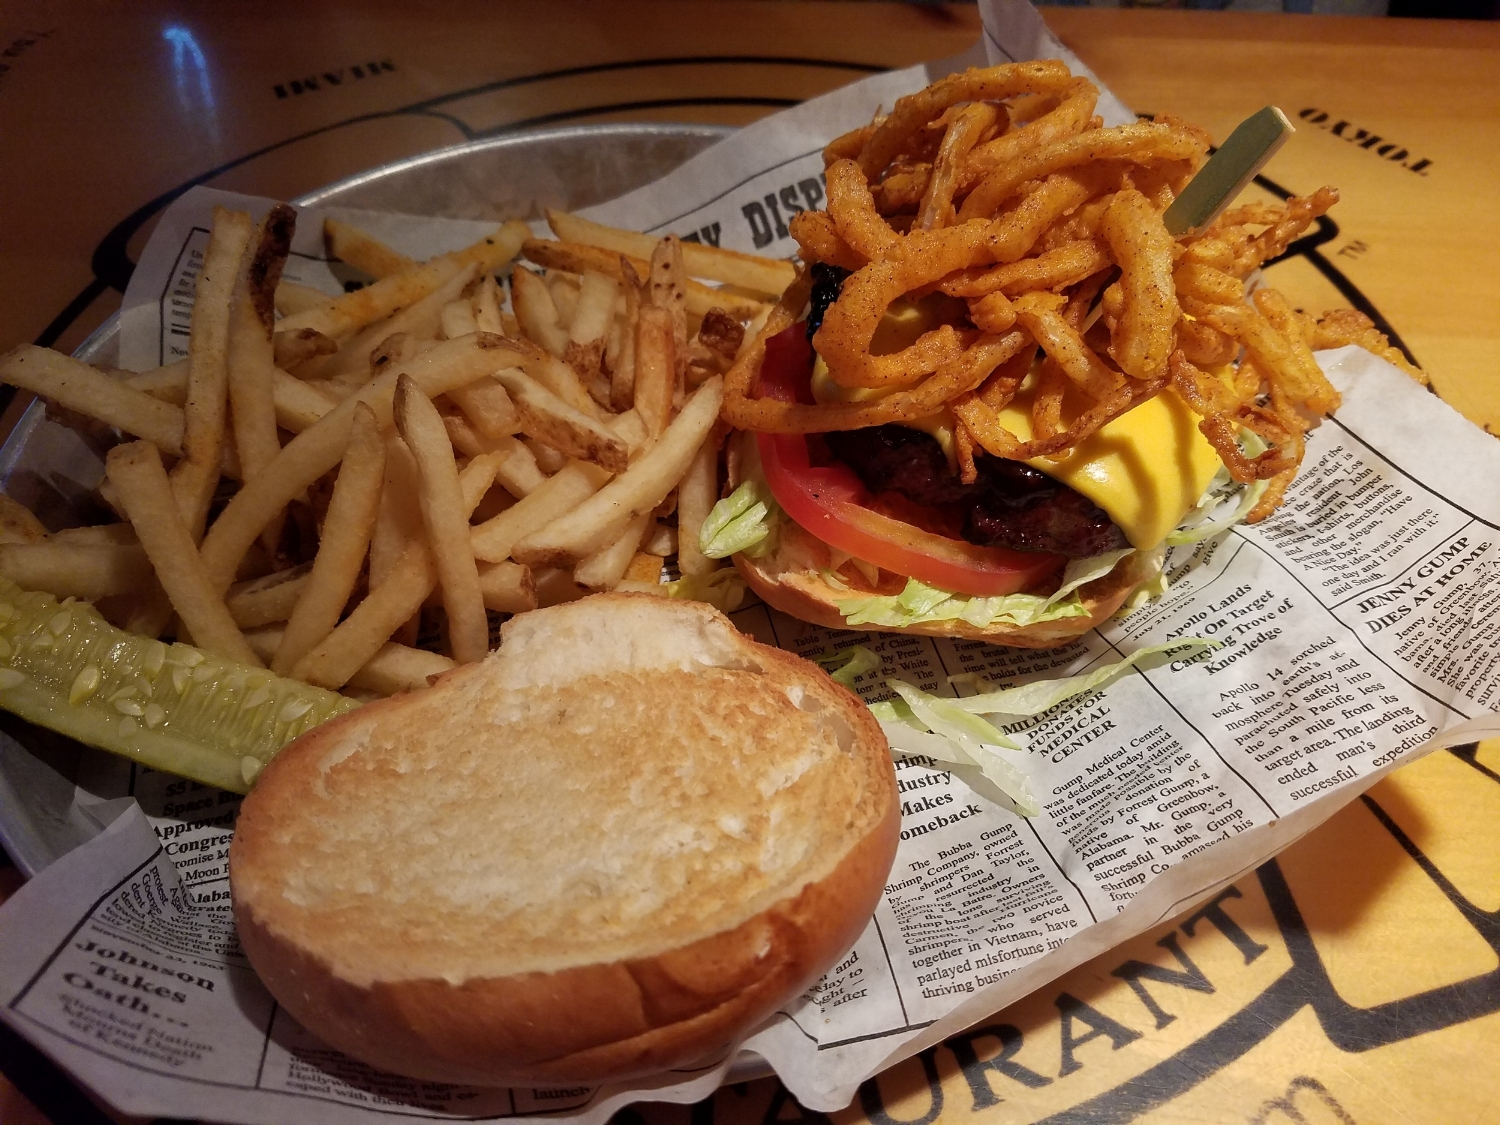 All American Cheeseburger with Frizzled Onions, BBQ Sauce, and Fries from Bubba Gump Shrimp Co.